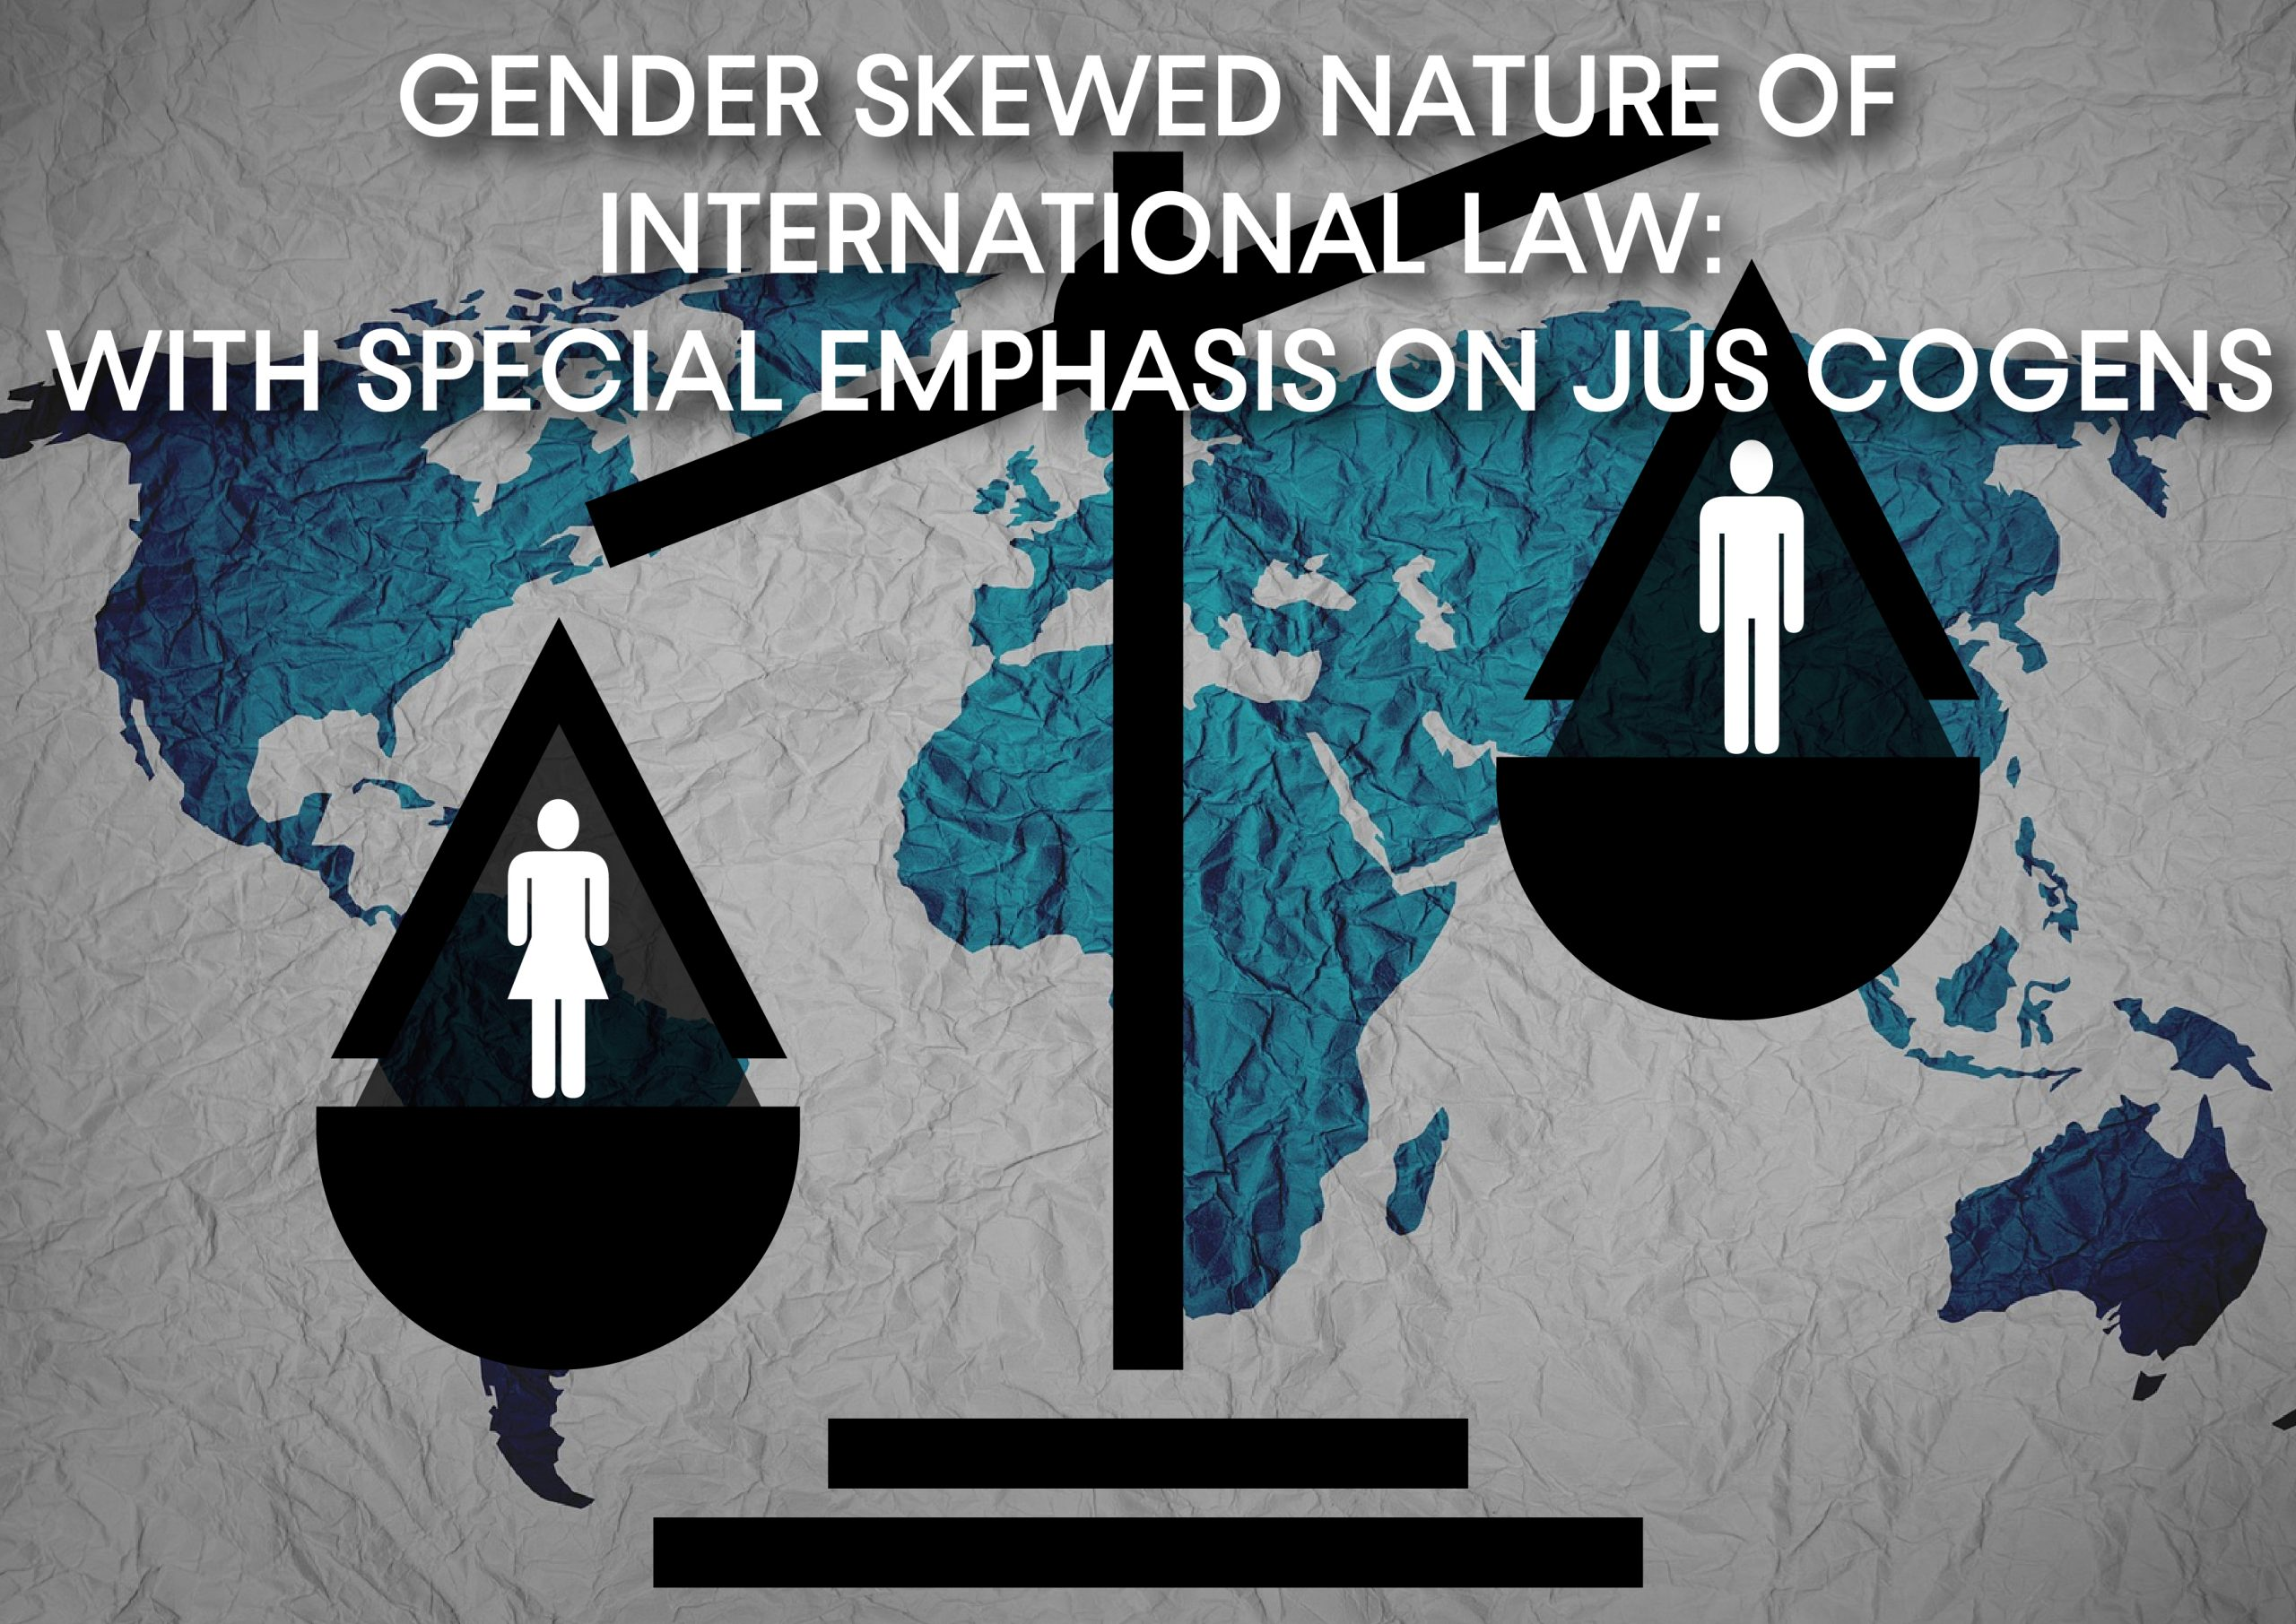 Gender Skewed Nature of International Law: With special emphasis on Jus Cogens